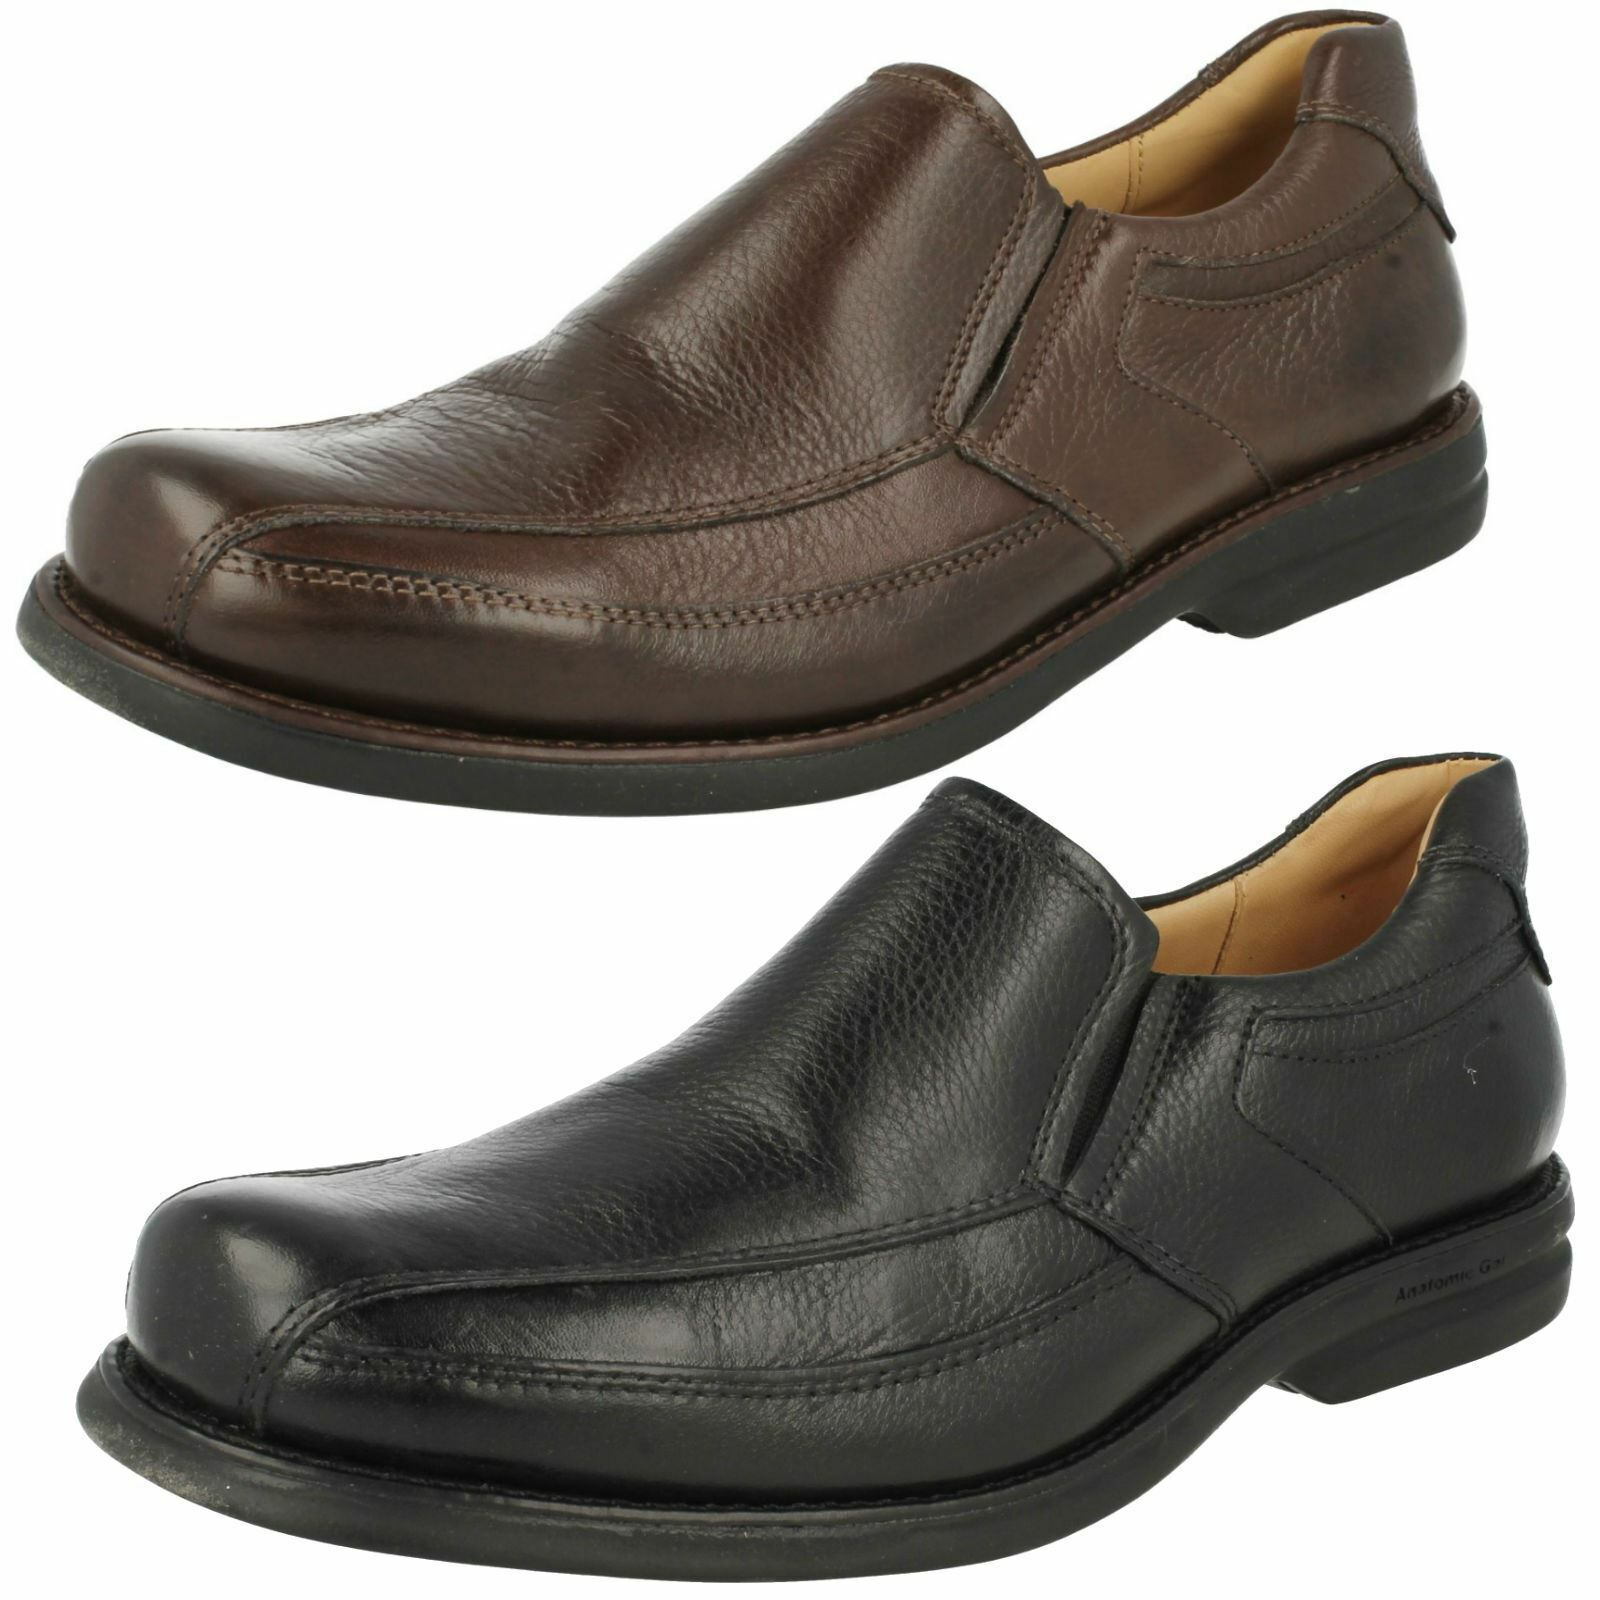 Mens Anatomic Leather Slip On Loafer Shoes Urupa 454558